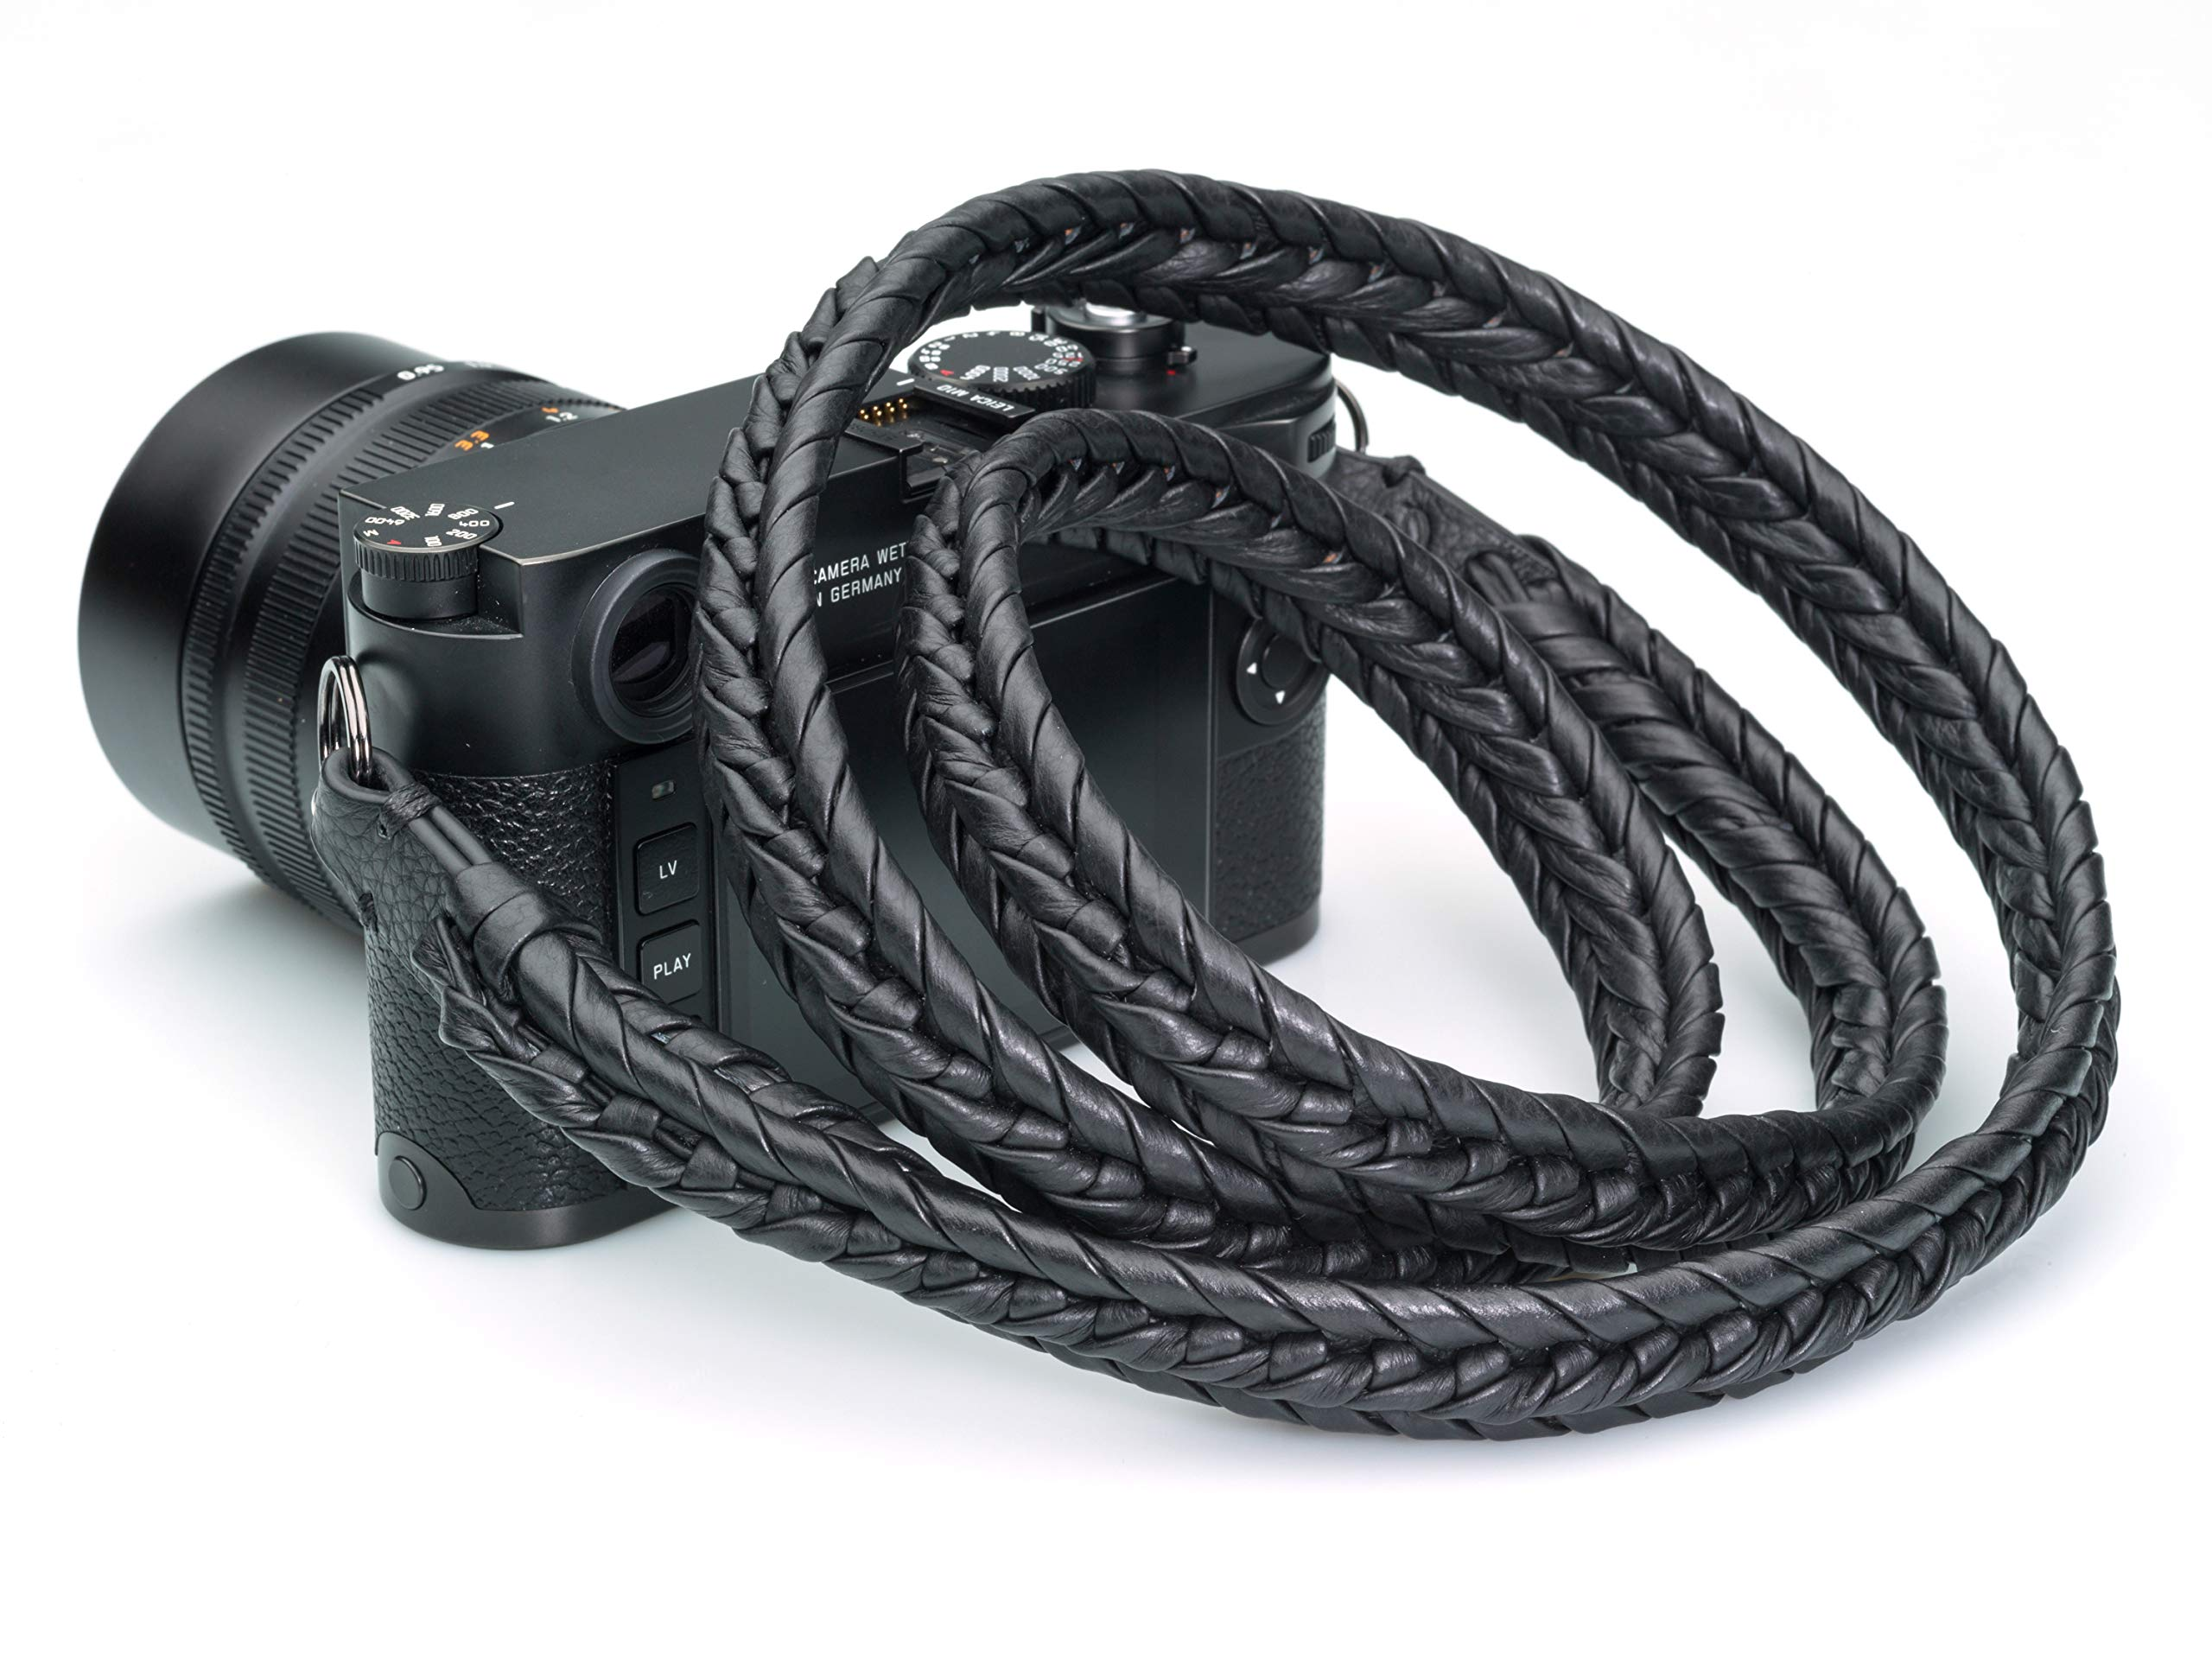 Vi Vante Ultime Blackout; Black on Black Braided Top Grain Leather Designer Camera Strap w/Electroplated Mounting Rings & Branded Carry Pouch by Vi Vante